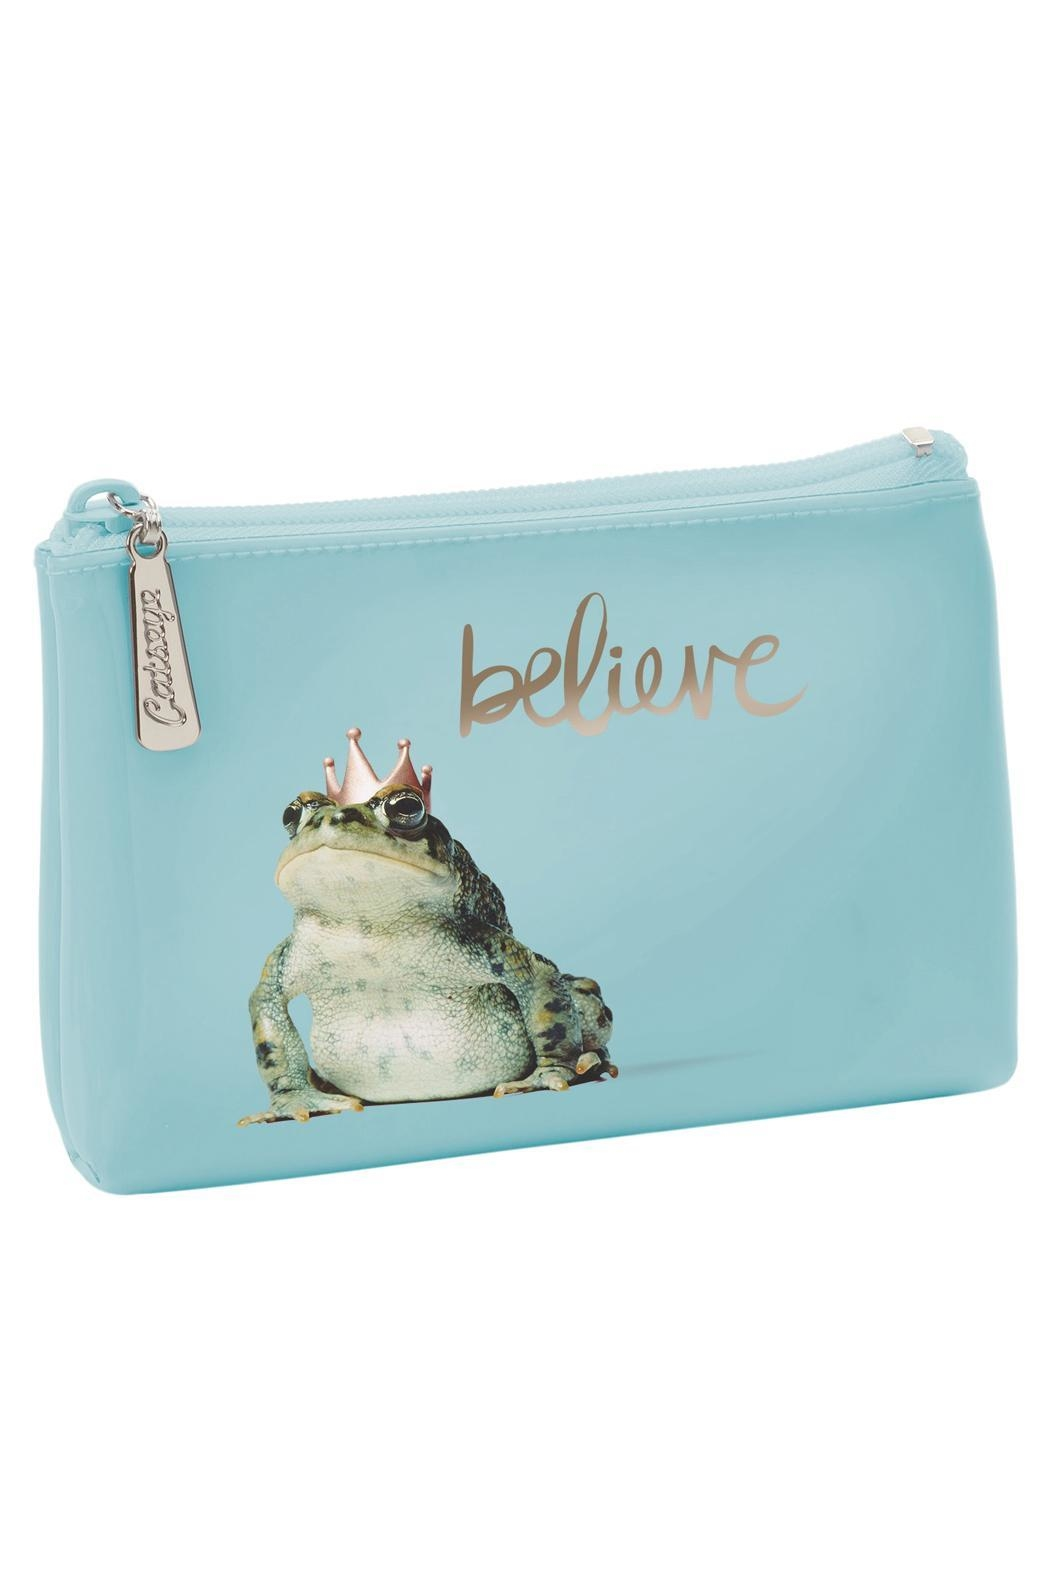 Patricia's Presents Believe Frog Change Purse - Main Image